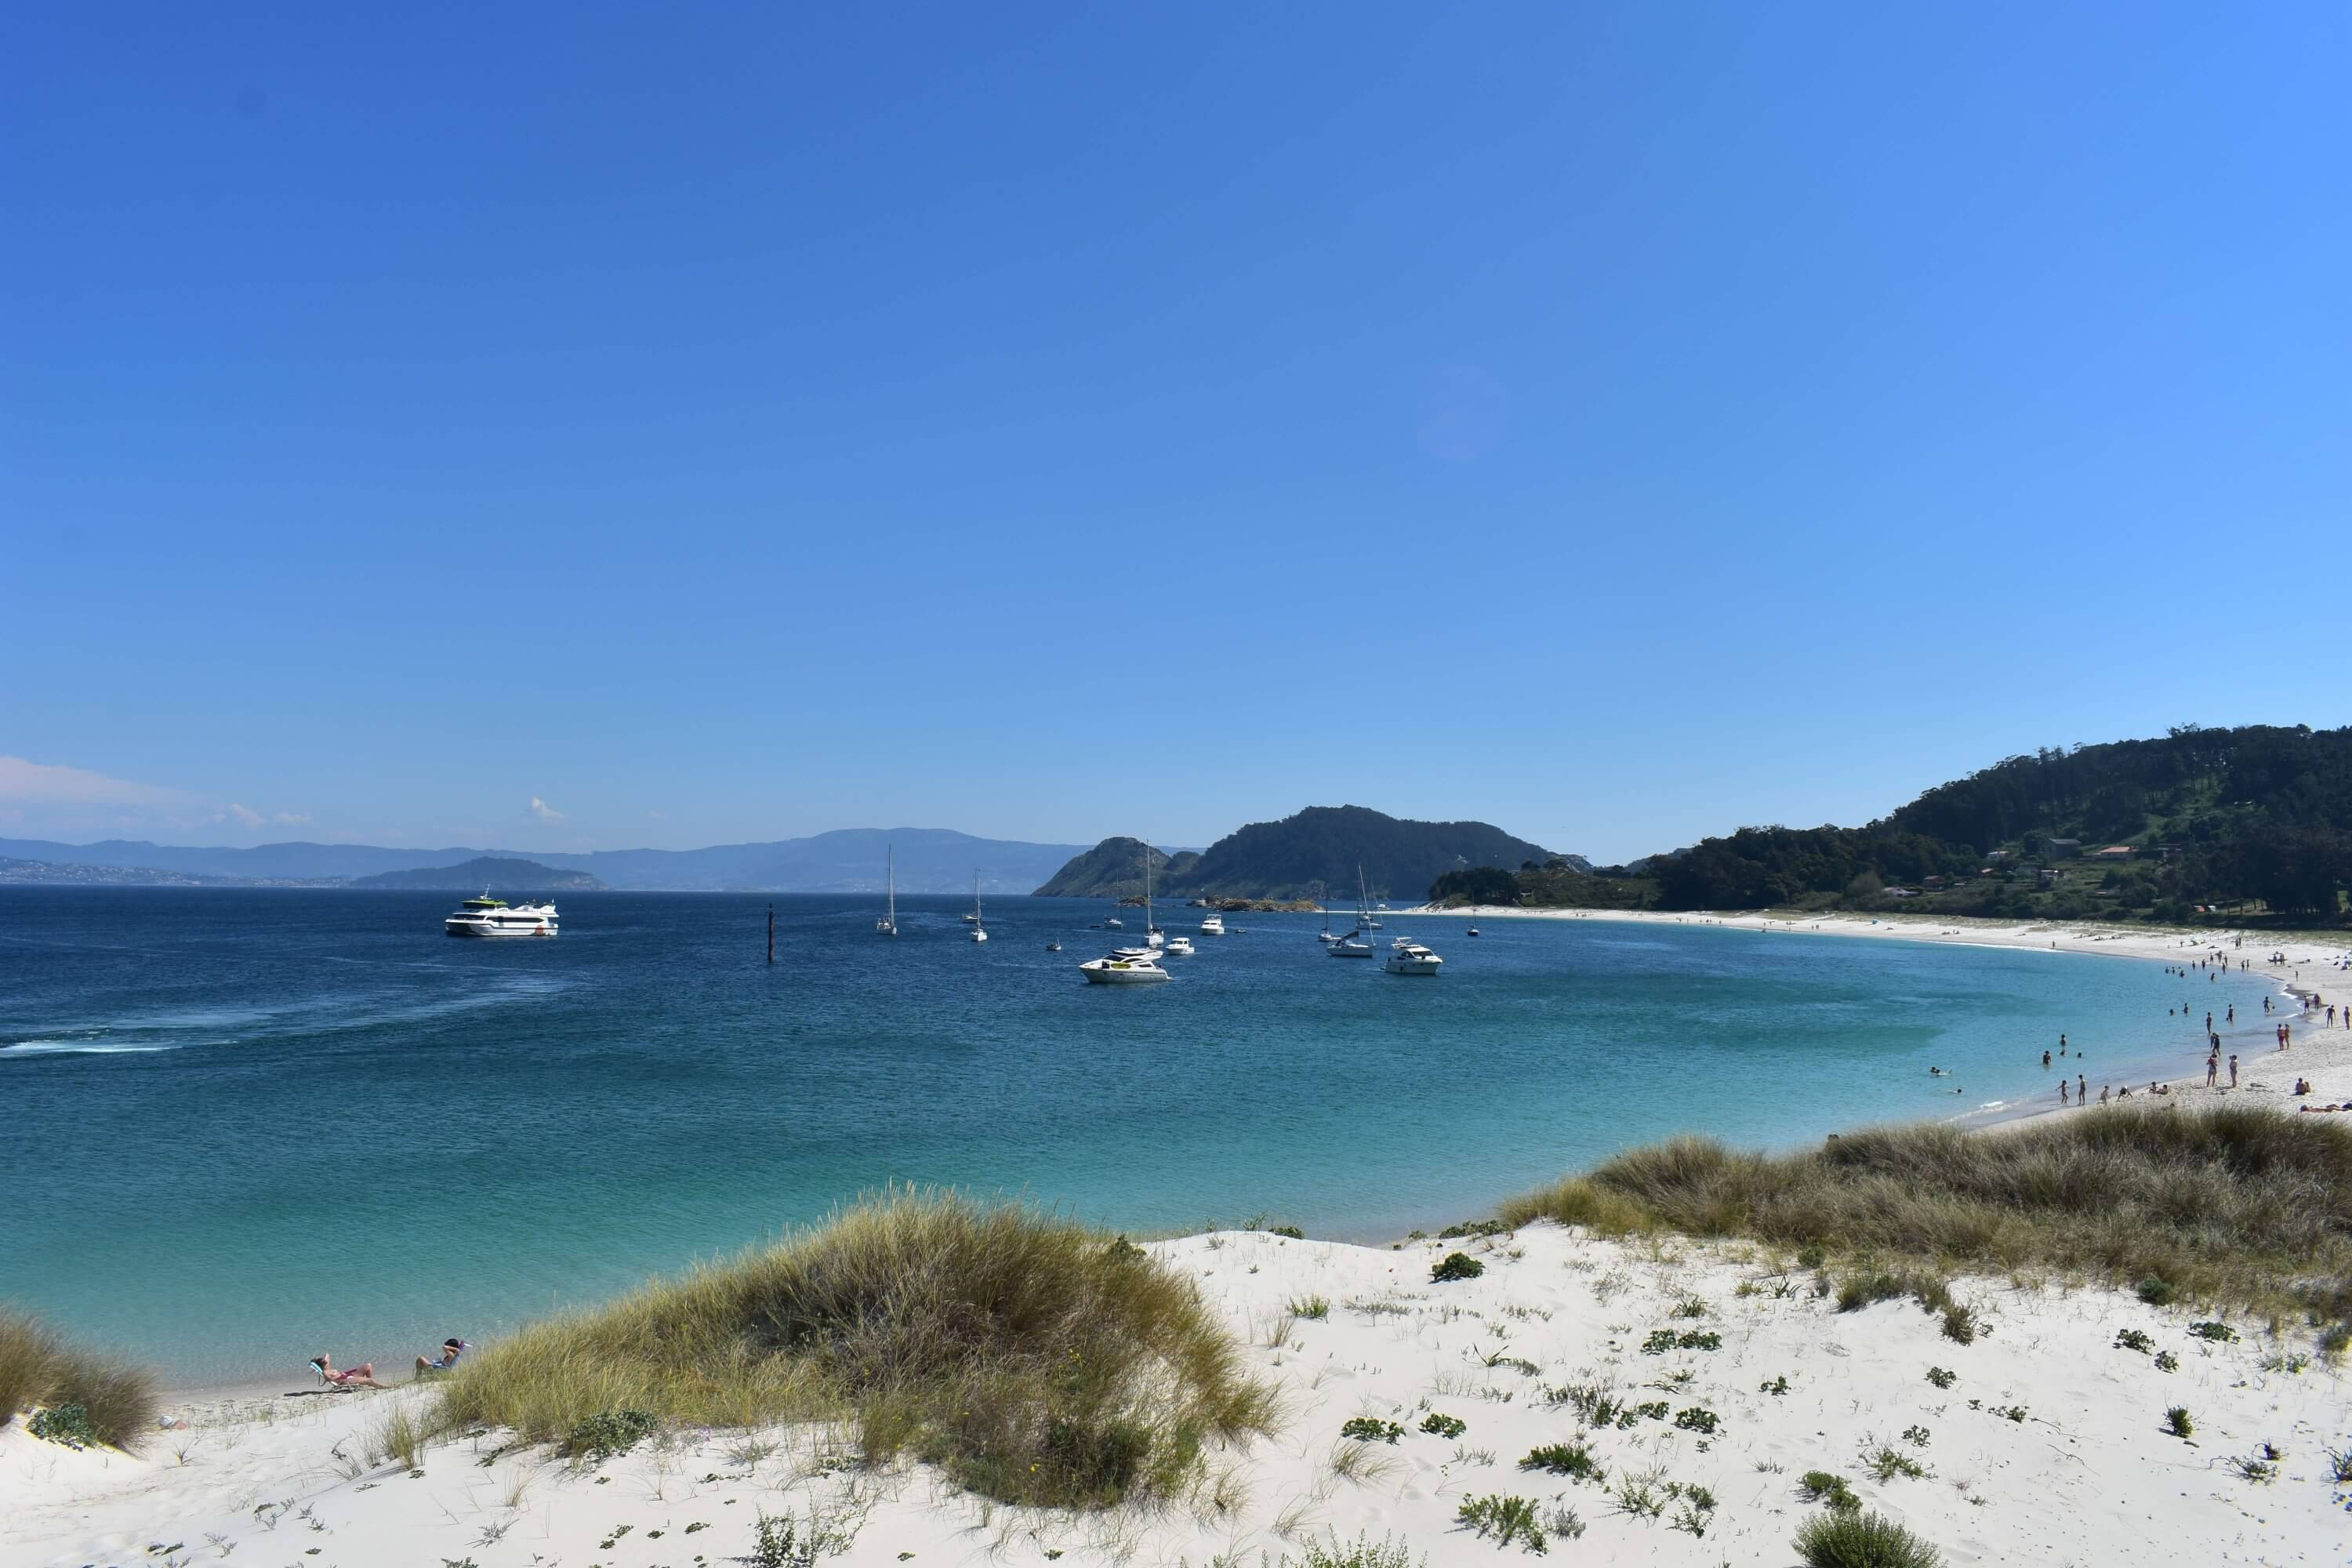 20 photos that will inspire you to visit the Cies Islands - Panorama of Rodas Beach on the Cies Islands